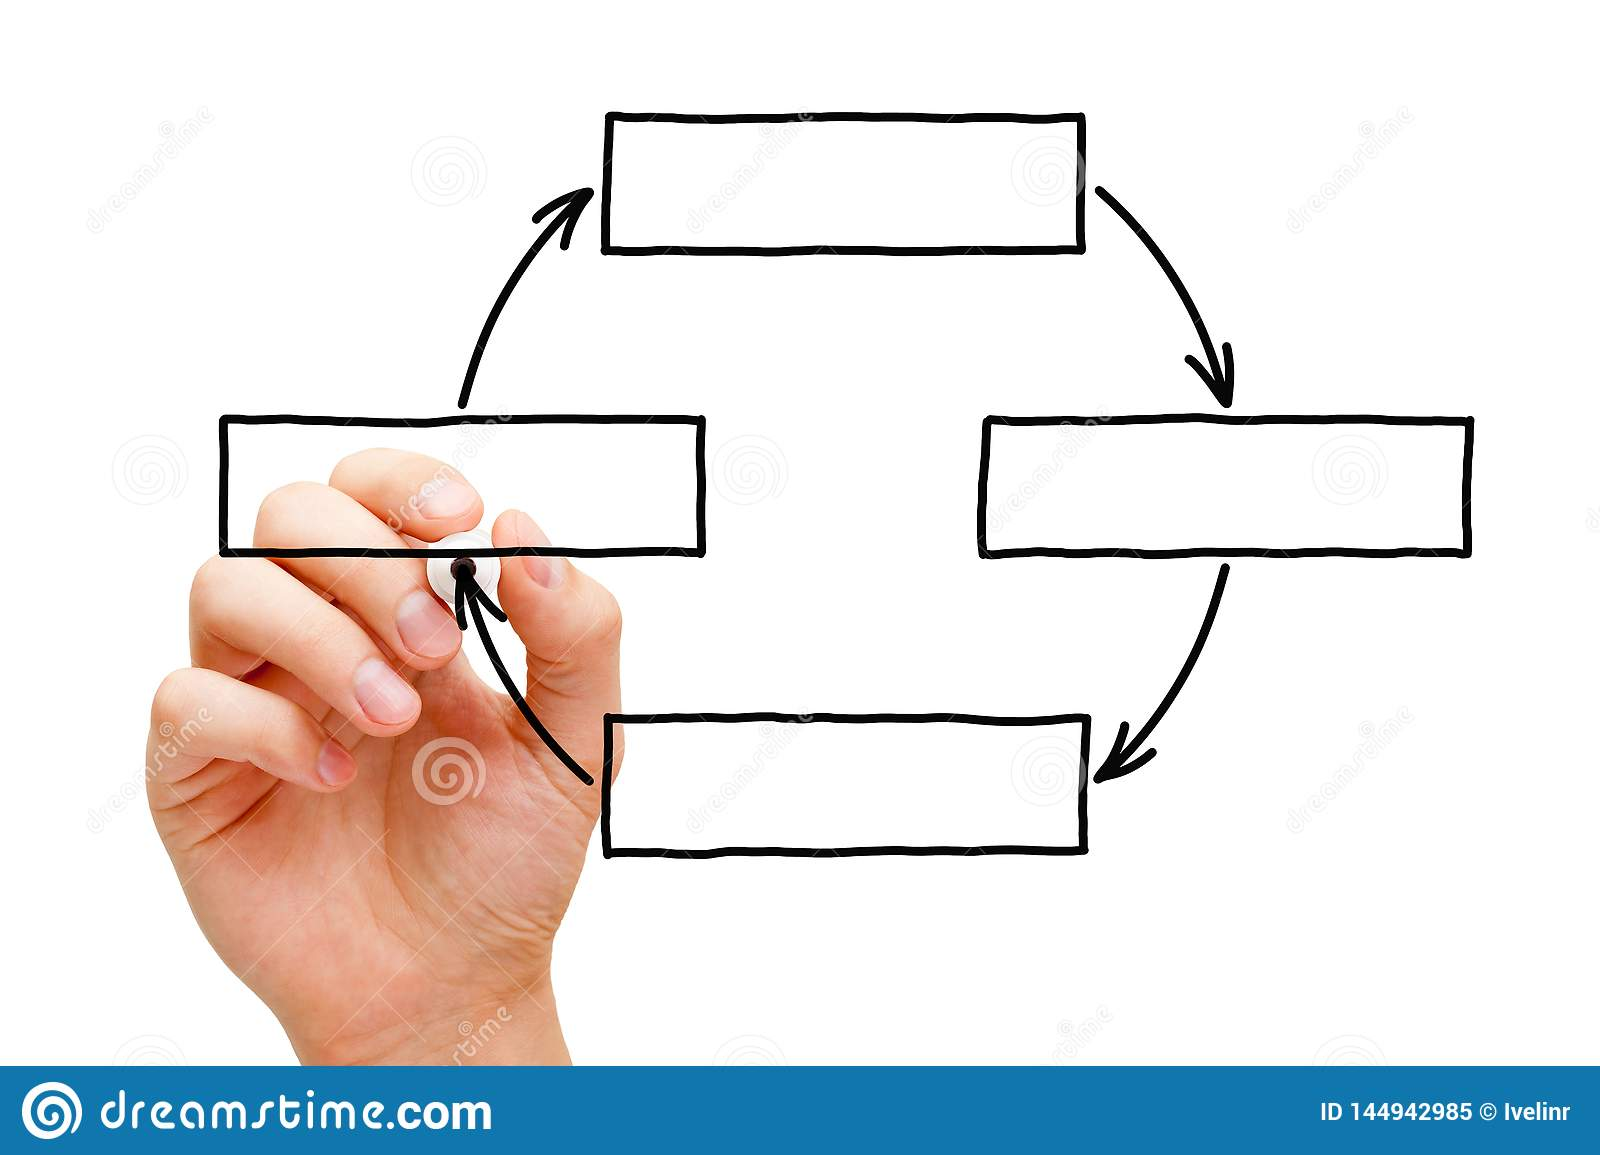 hight resolution of hand drawing blank cycle diagram stock image image of management blank hand diagram